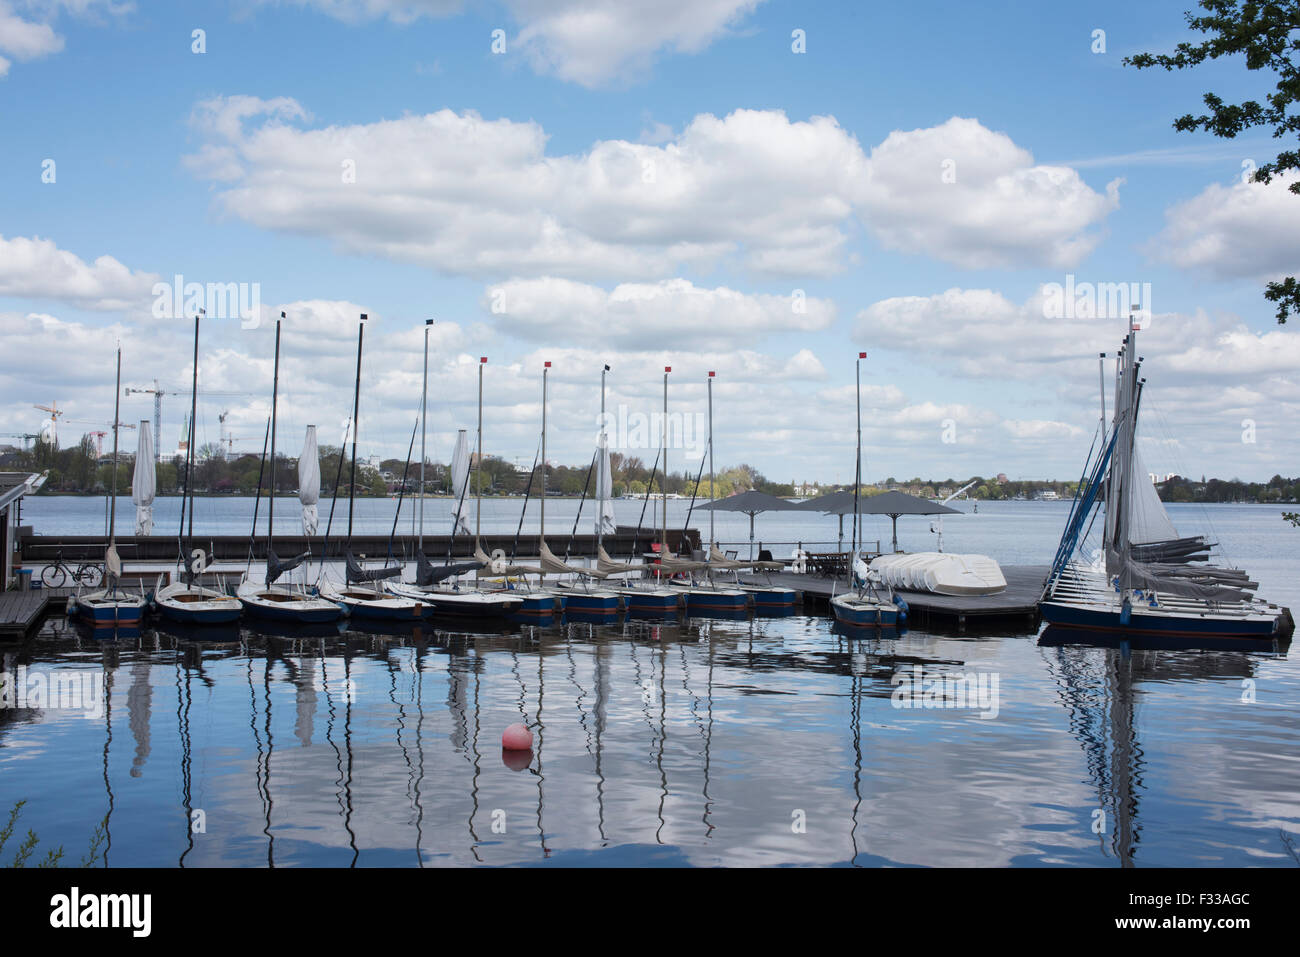 View across the Aussen Alster, the large lake in Hamburg, Germany. - Stock Image